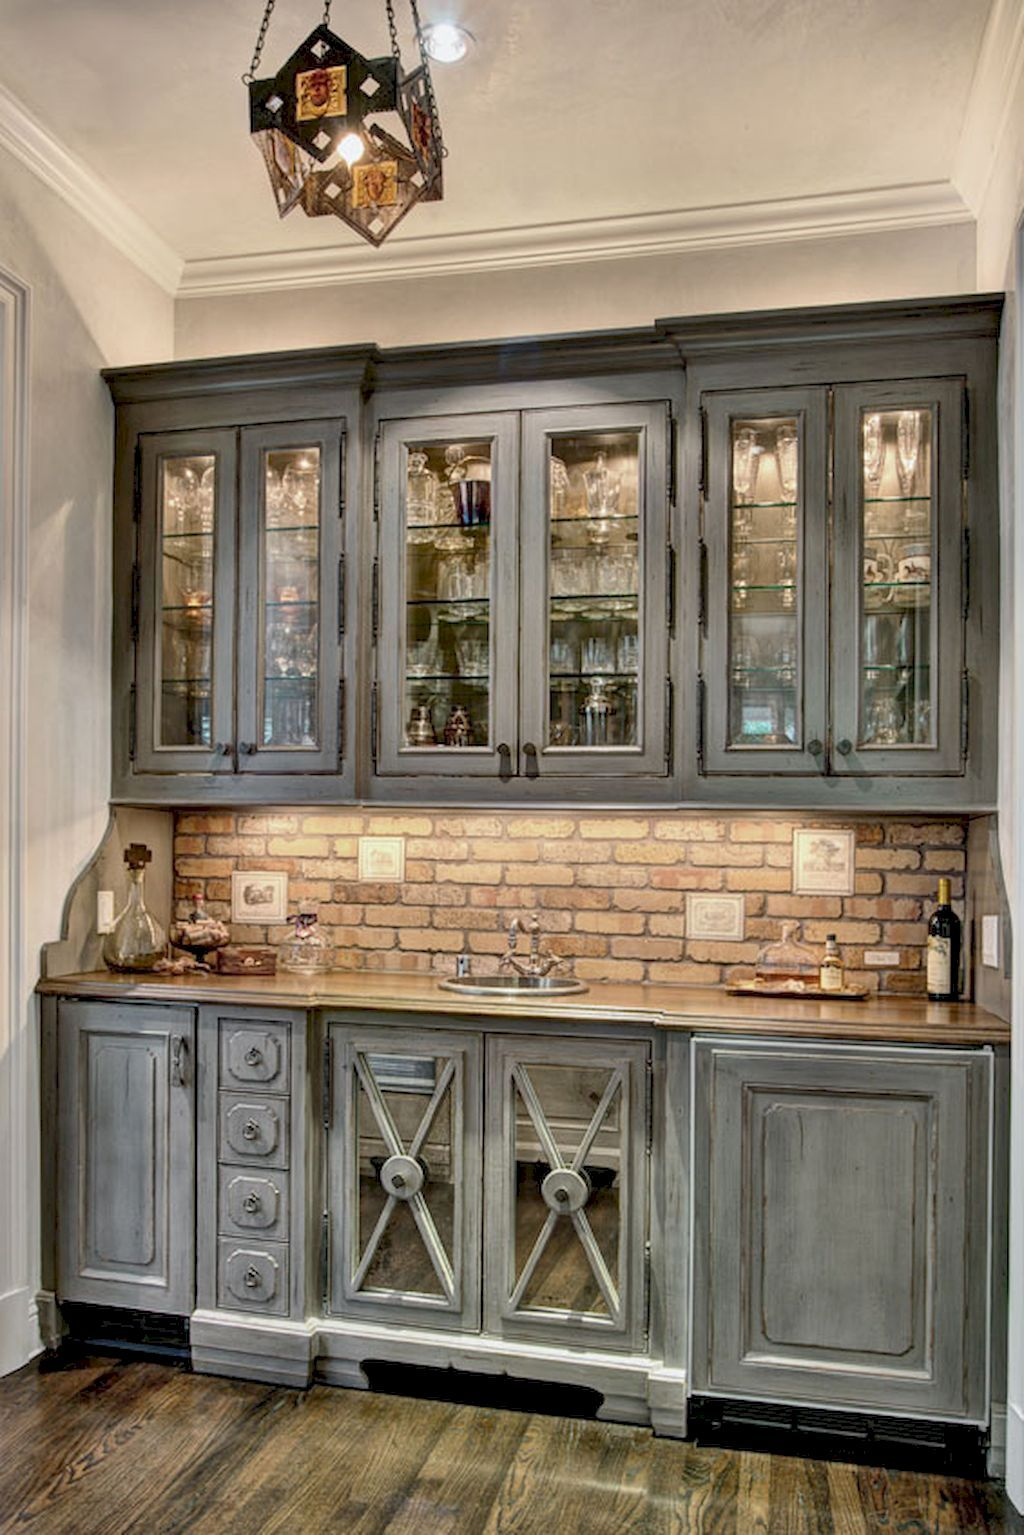 80 gorgeous farmhouse gray kitchen cabinet design ideas farmhouse rh pinterest com